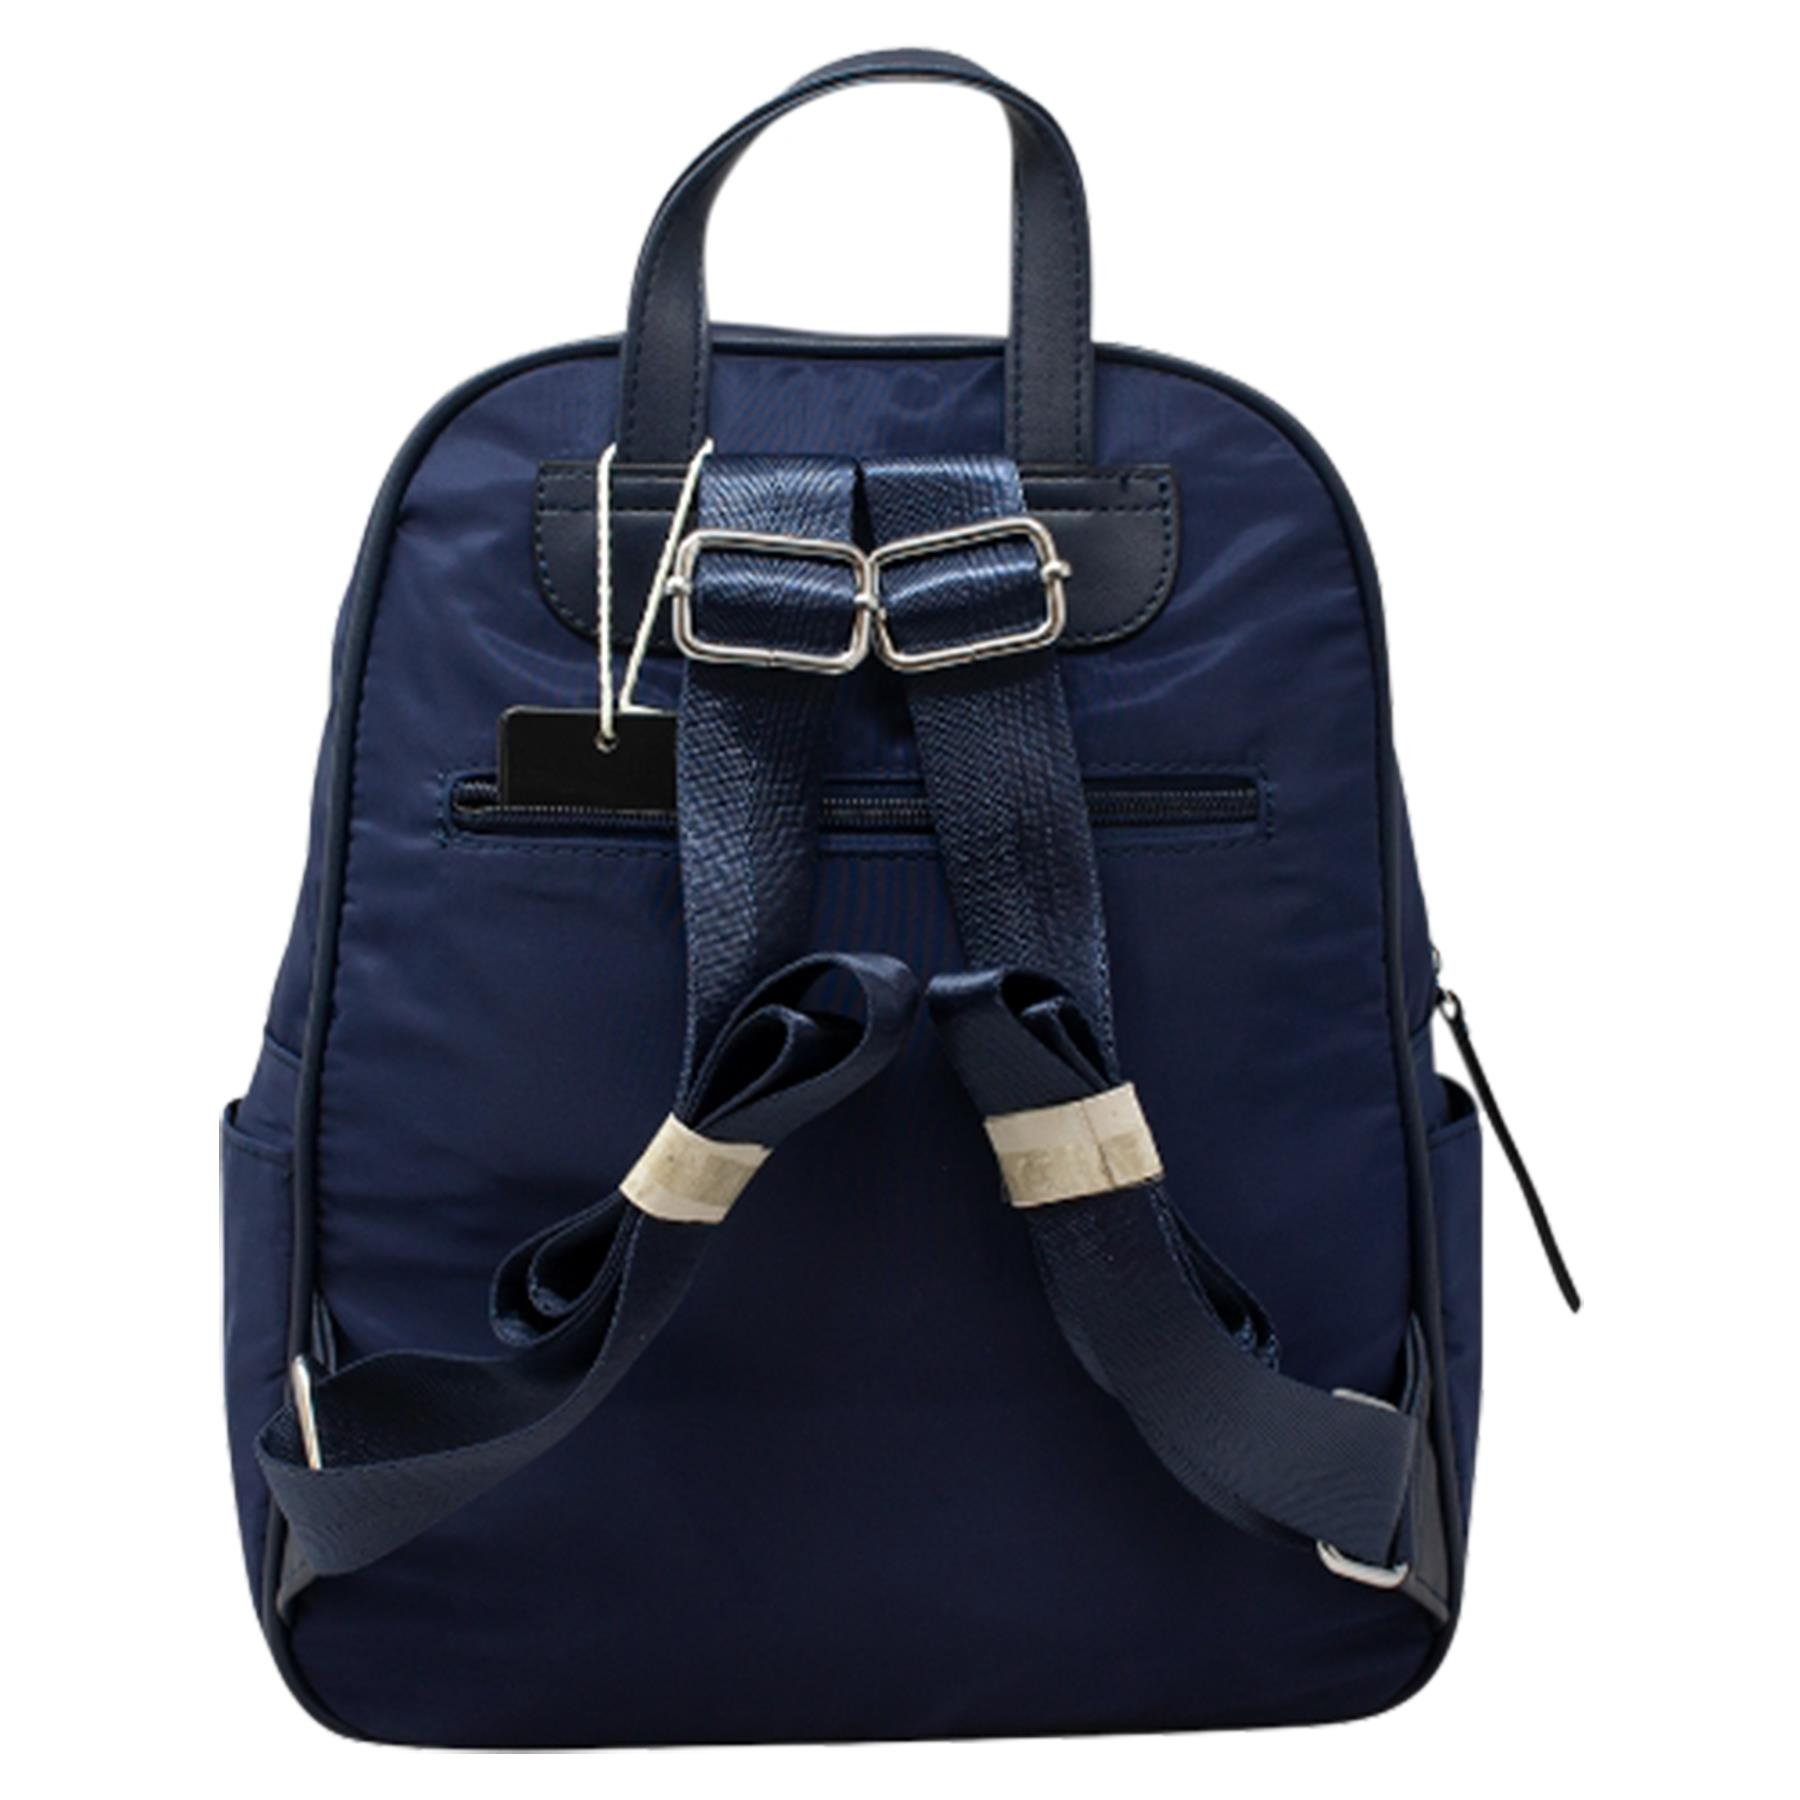 New-Unisex-Plain-Nylon-Showerproof-School-College-Backpack-Rucksack thumbnail 9